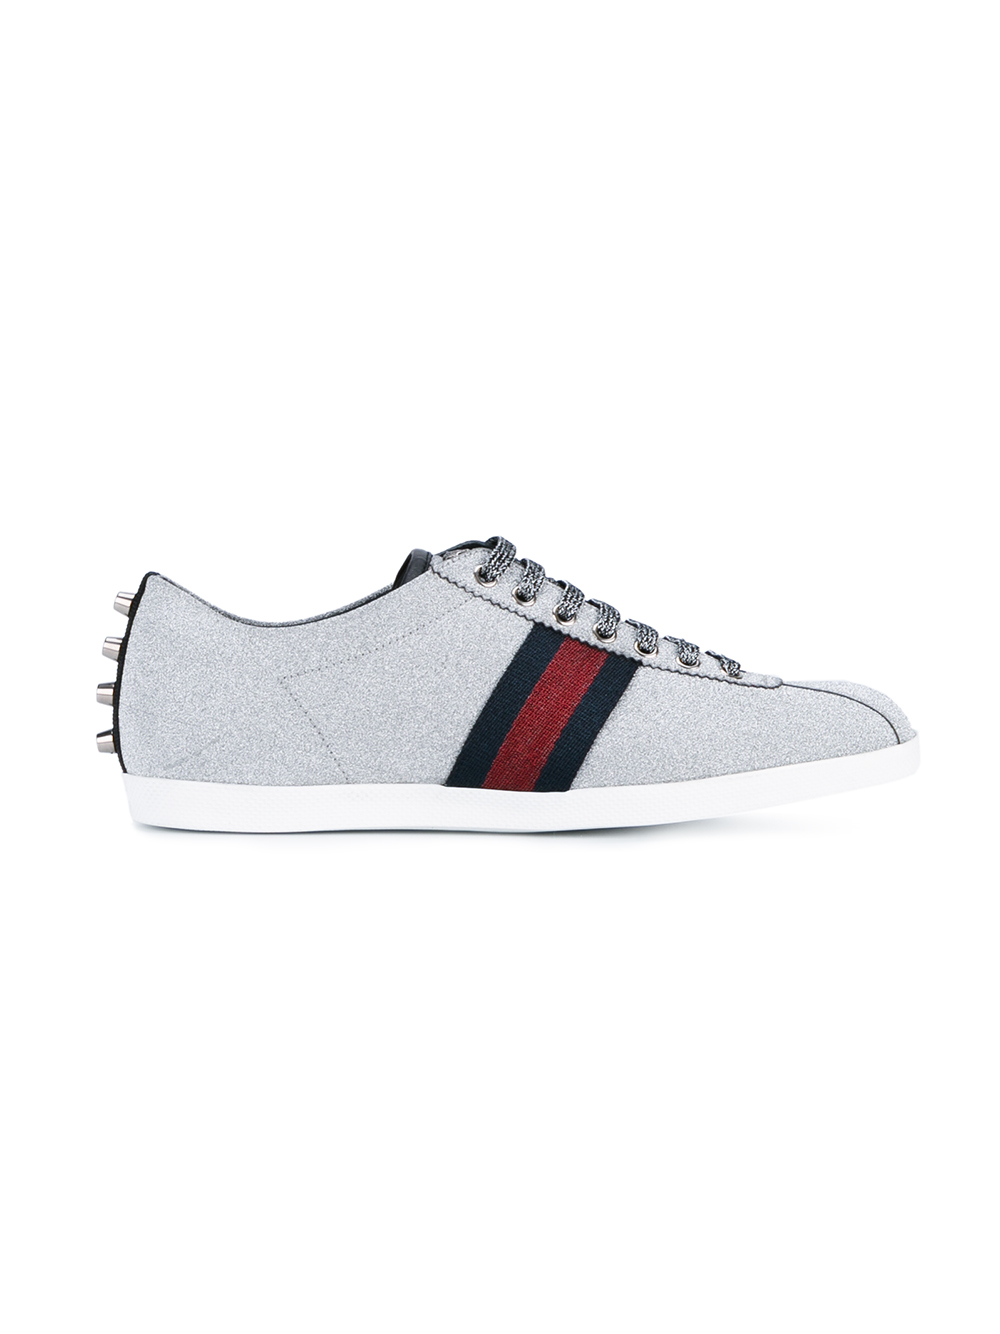 gucci mens sparkle sneakers,Free